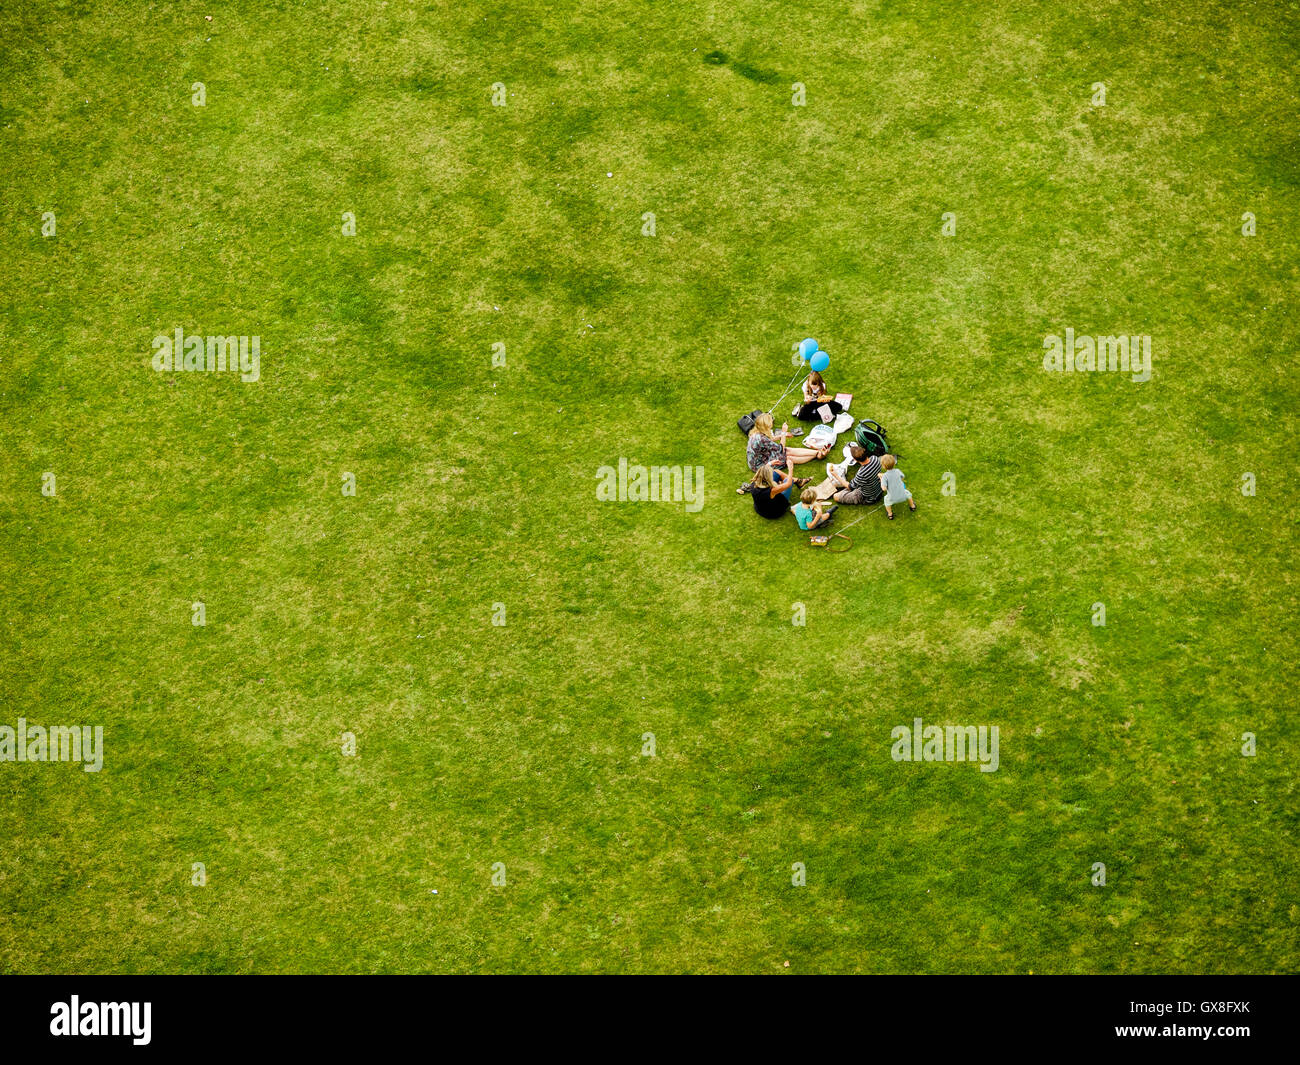 Family with young children having a picnic on a green grass field - Stock Image